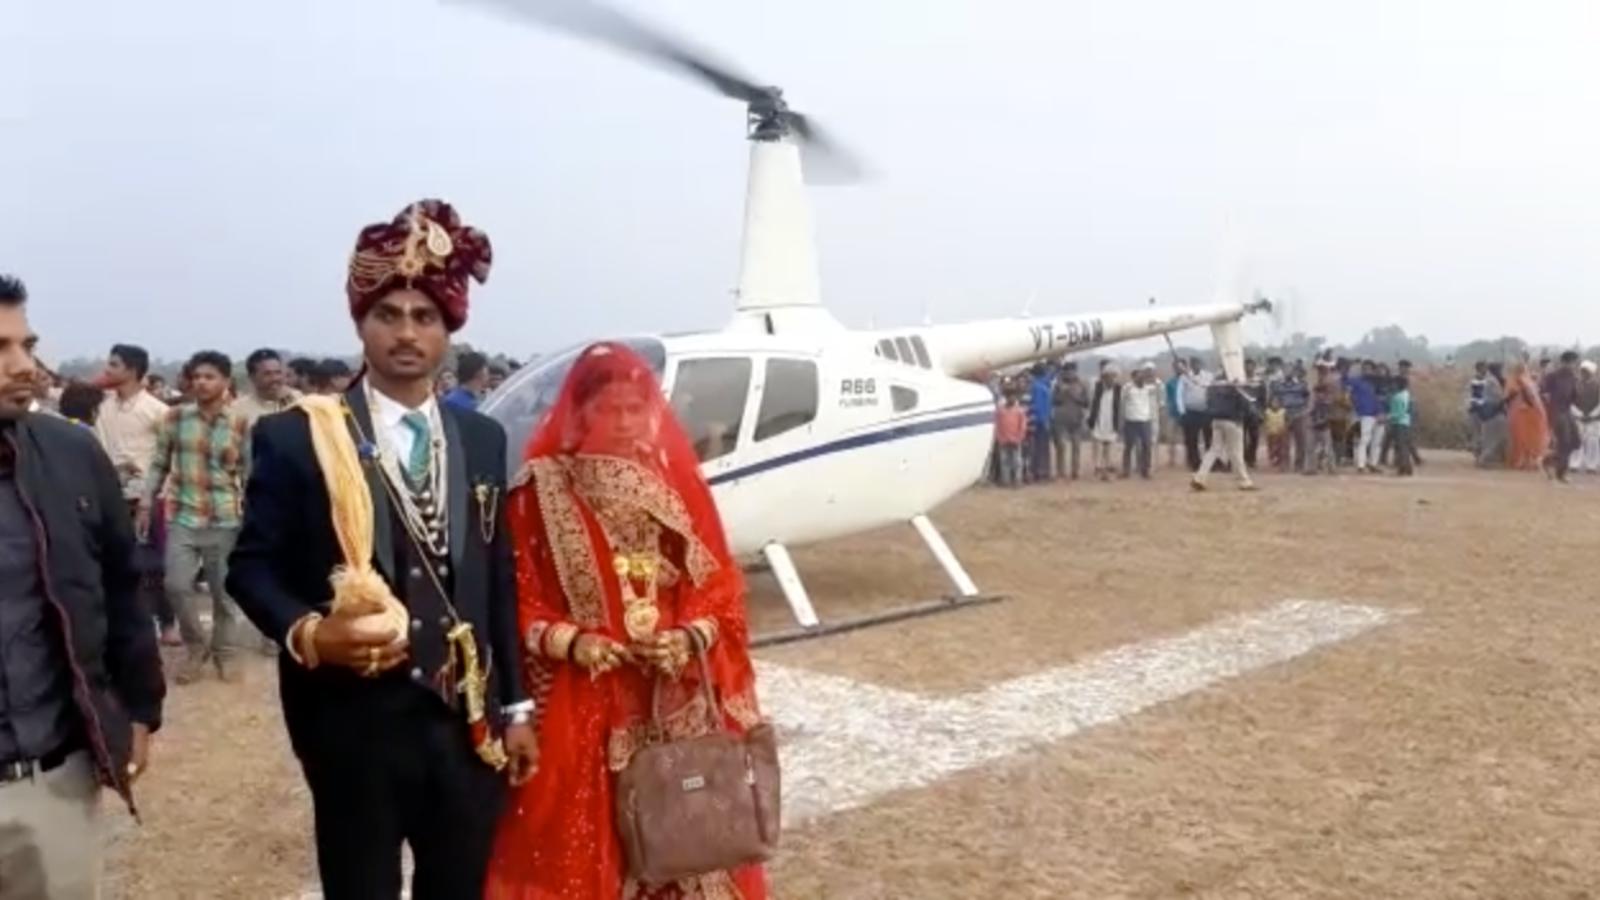 mp-farmer-hires-chopper-to-bring-daughter-in-law-home-video-goes-viral